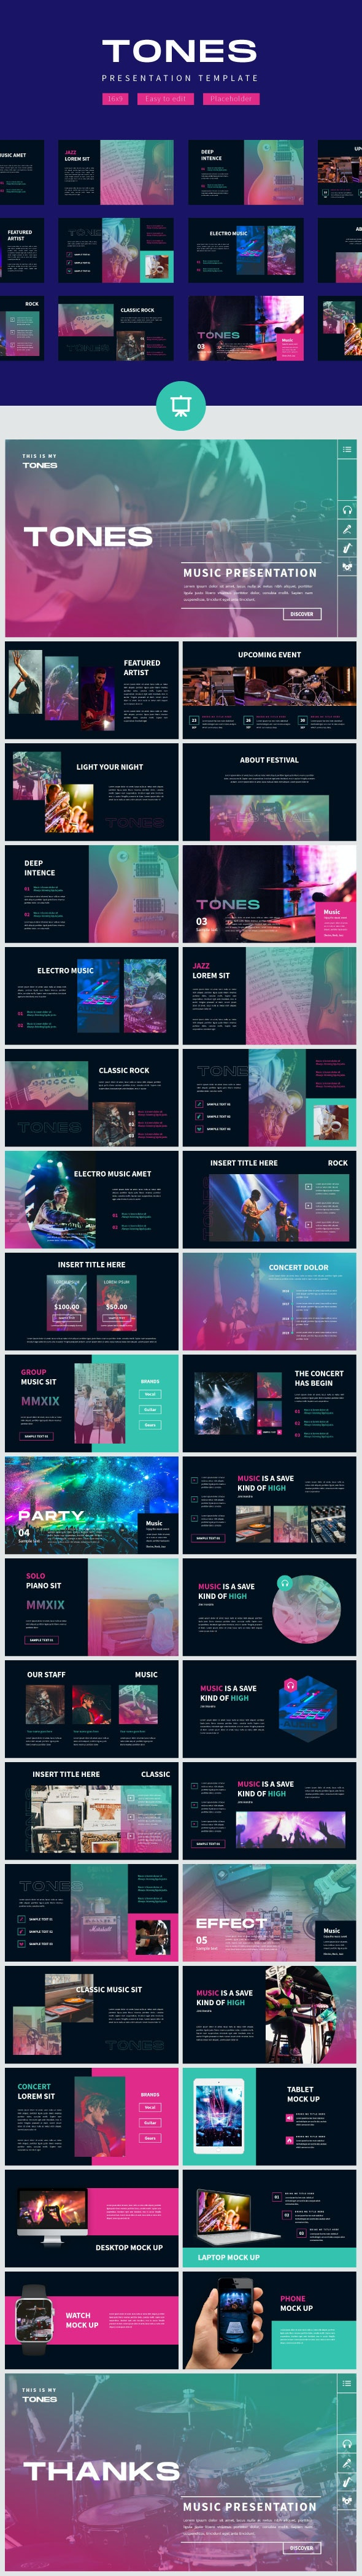 Tones Music Event - Google Slide Template - Business PowerPoint Templates